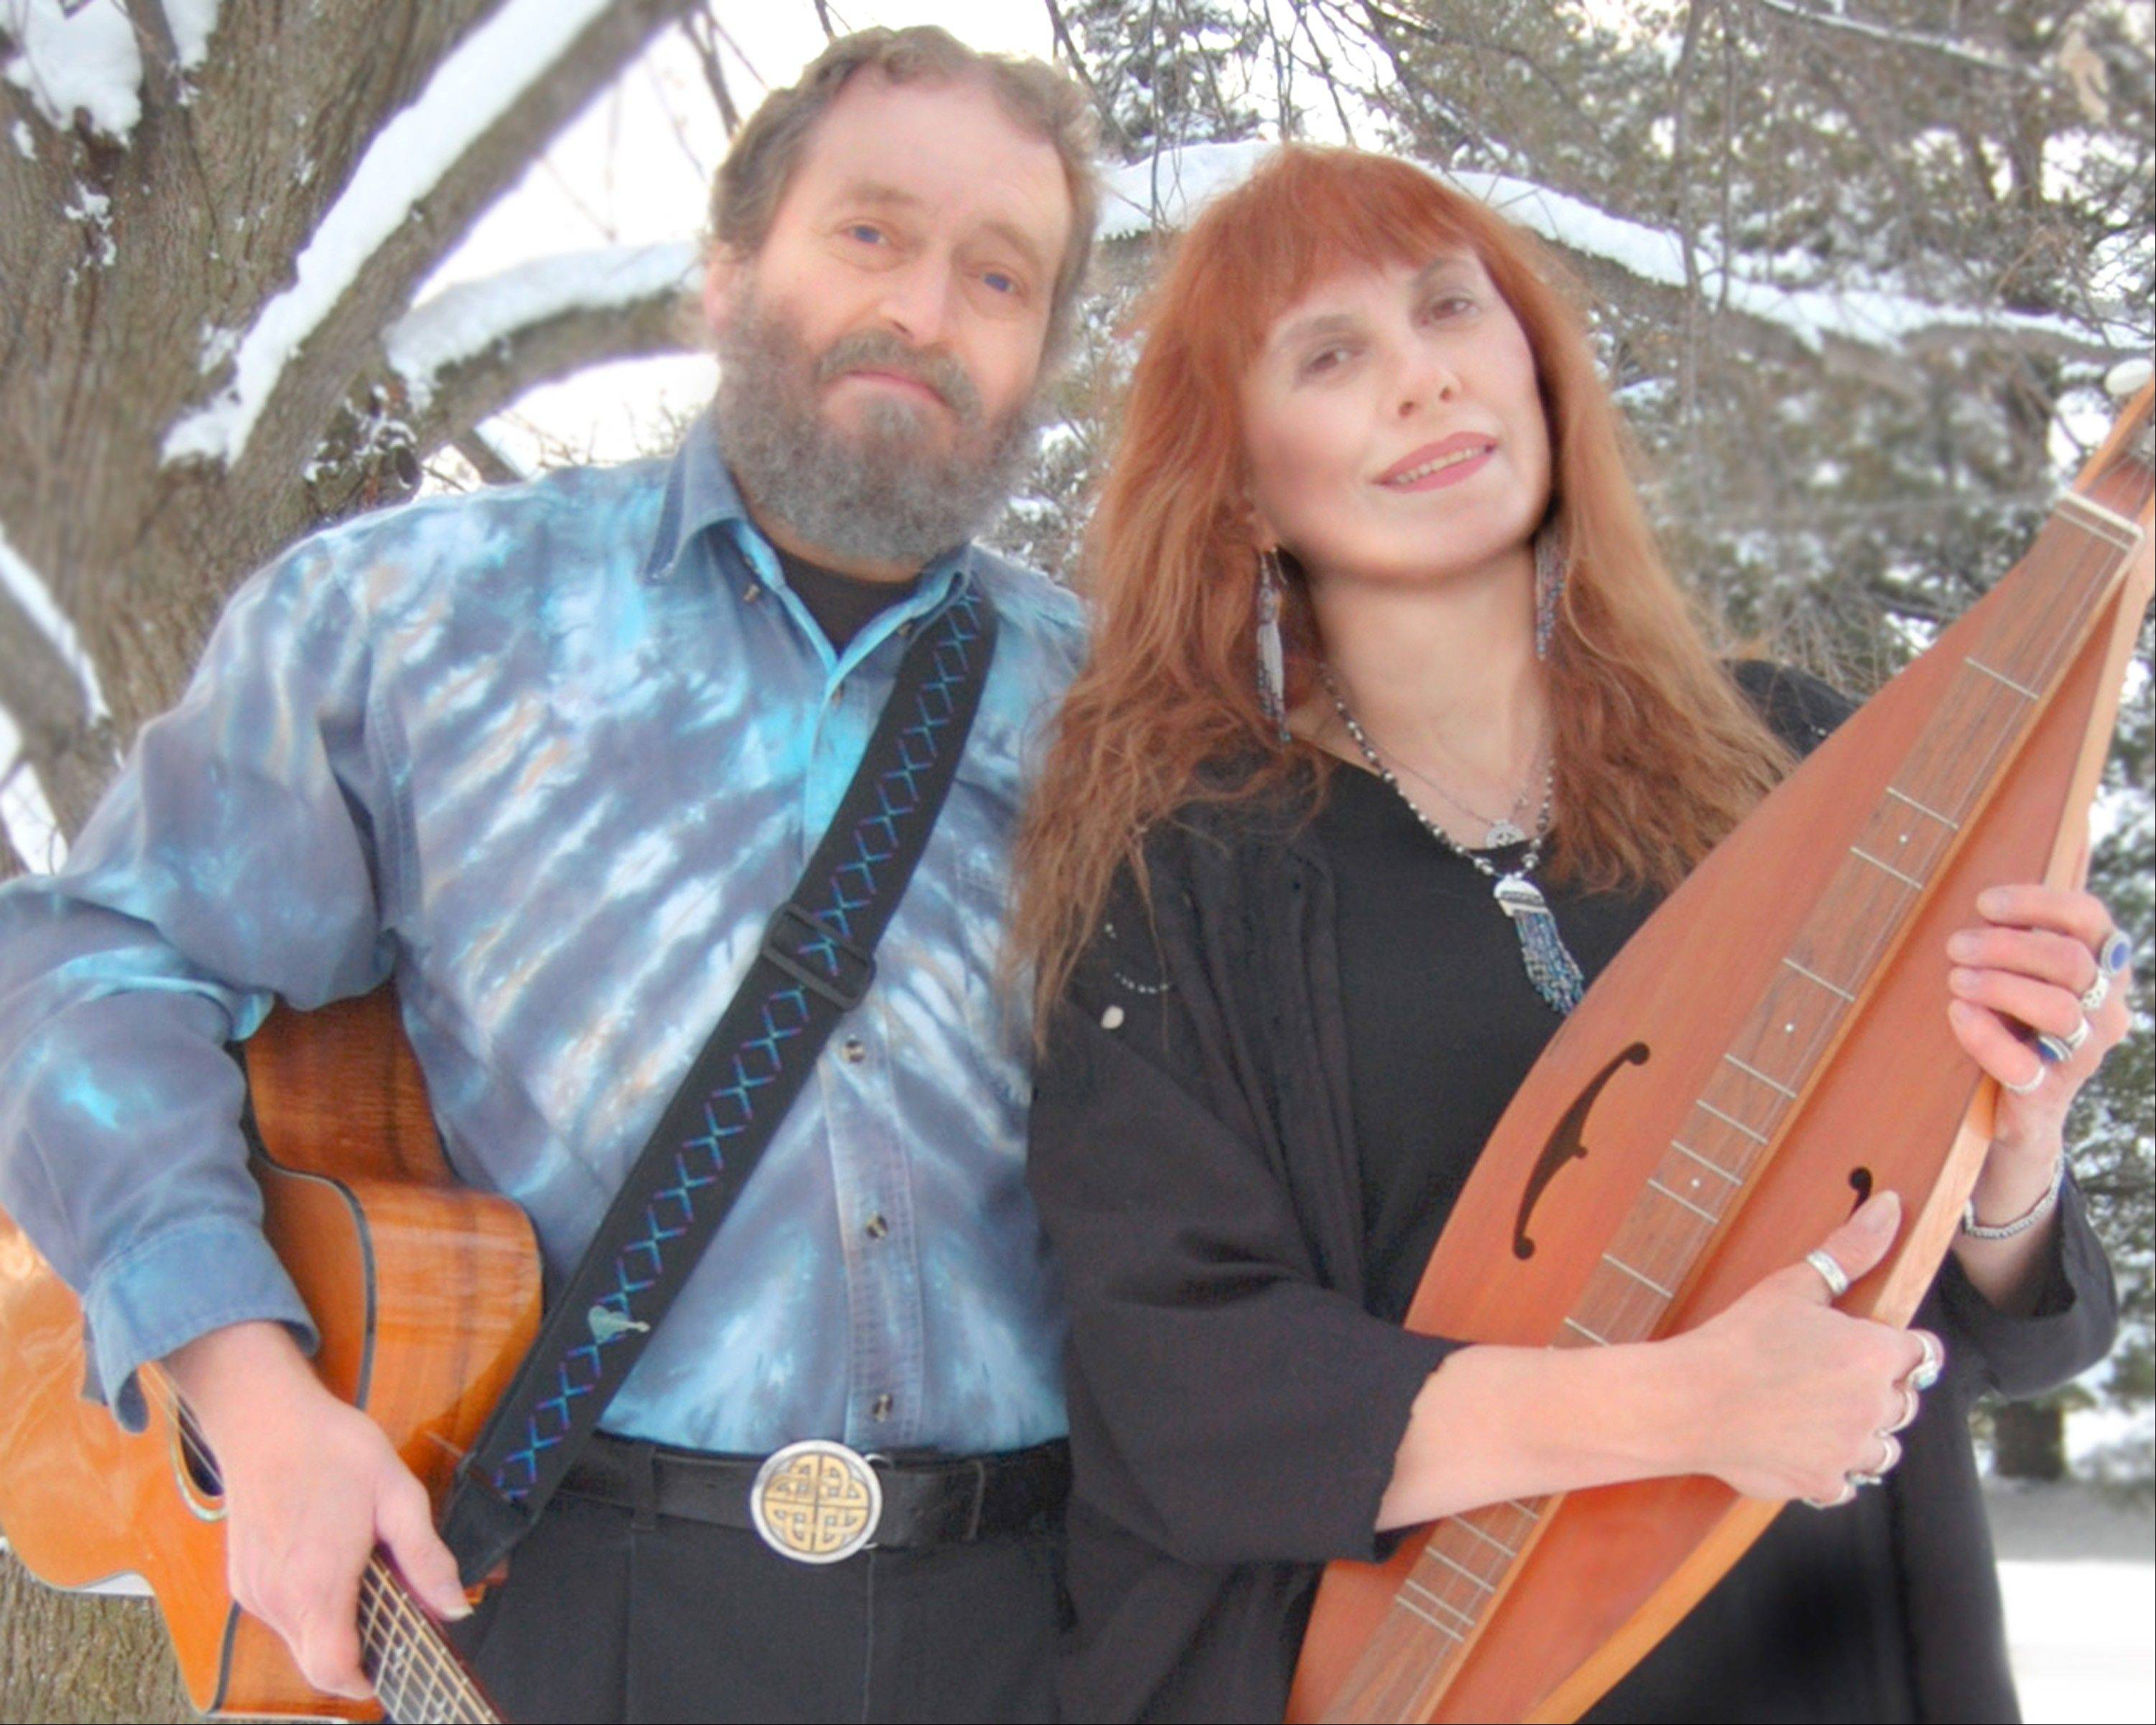 February Sky, featuring Celtic guitarist Phil Cooper with singer Susan Urban, performs at McHenry County College's Luecht Conference Center in Crystal Lake at 3 p.m. Sunday, Jan. 12.